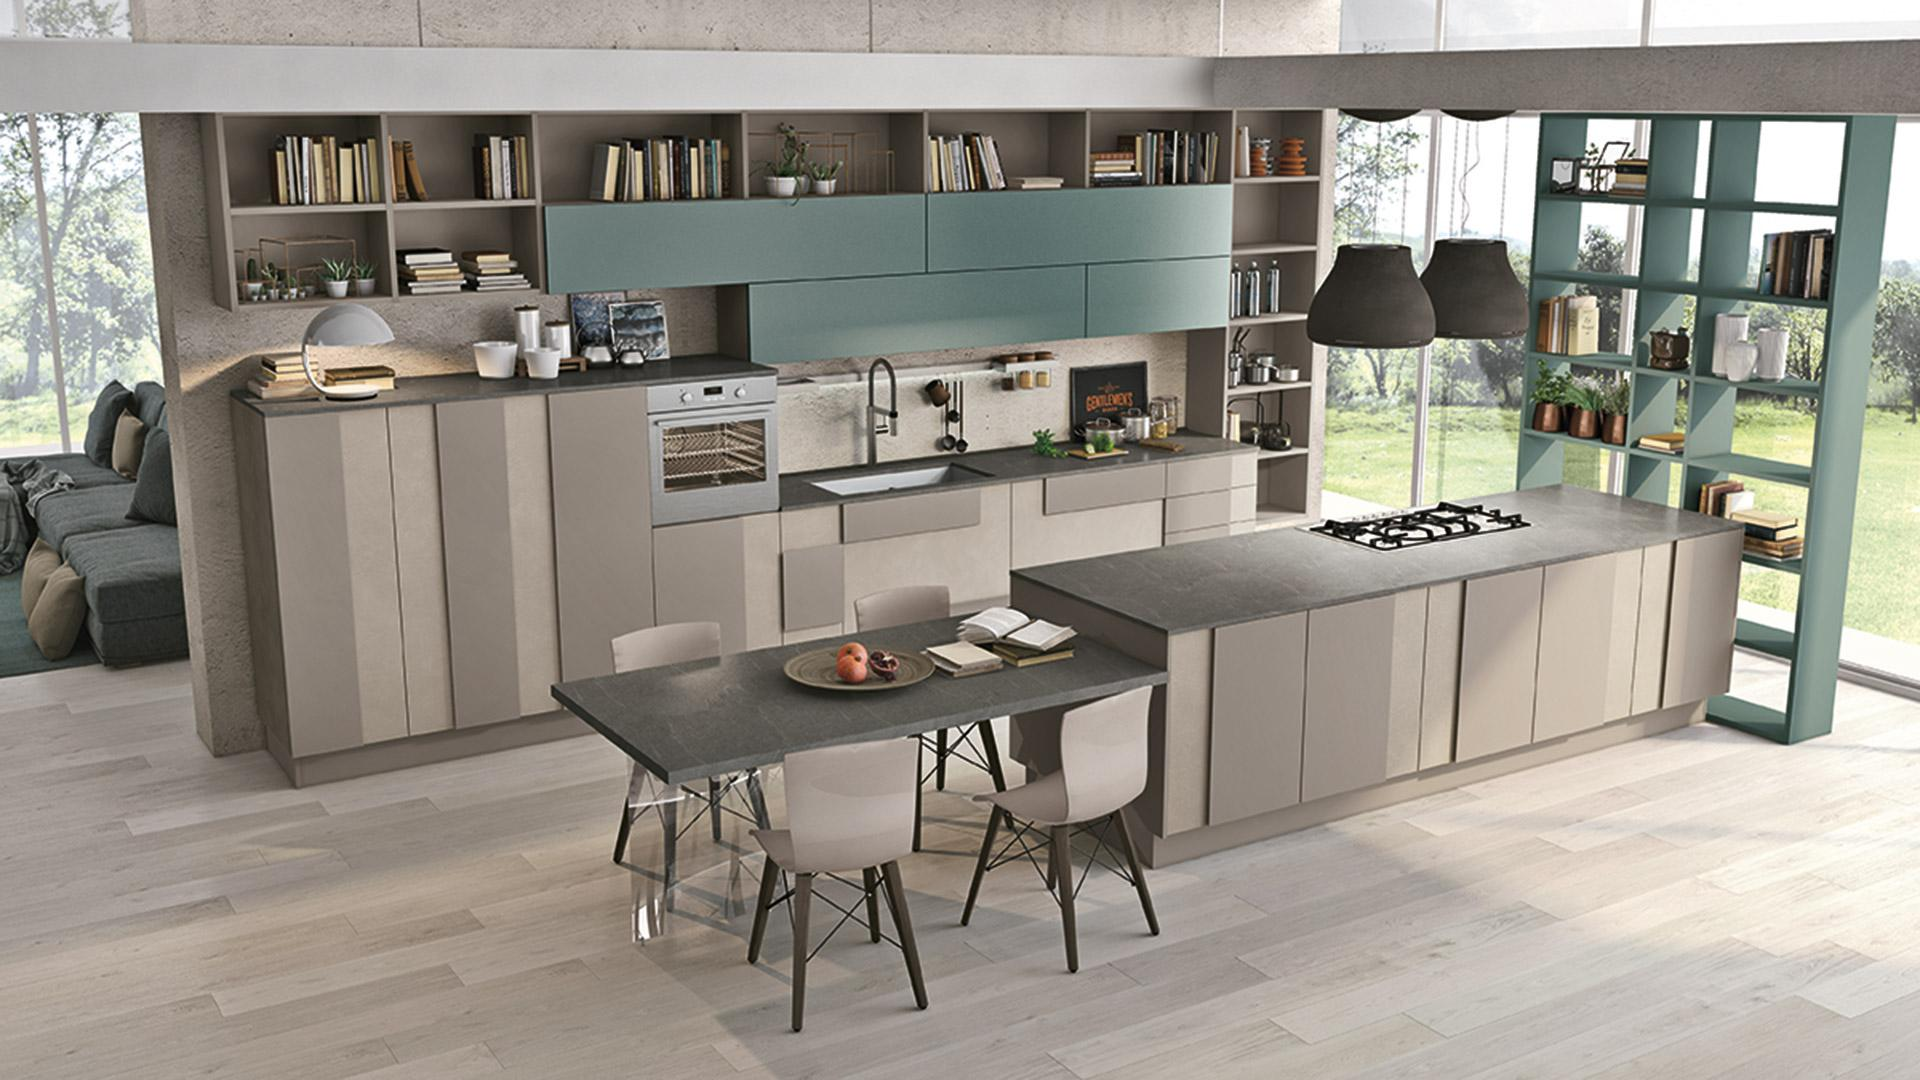 Lube creativa mobilia group divani cucine e for Cucine mobilia